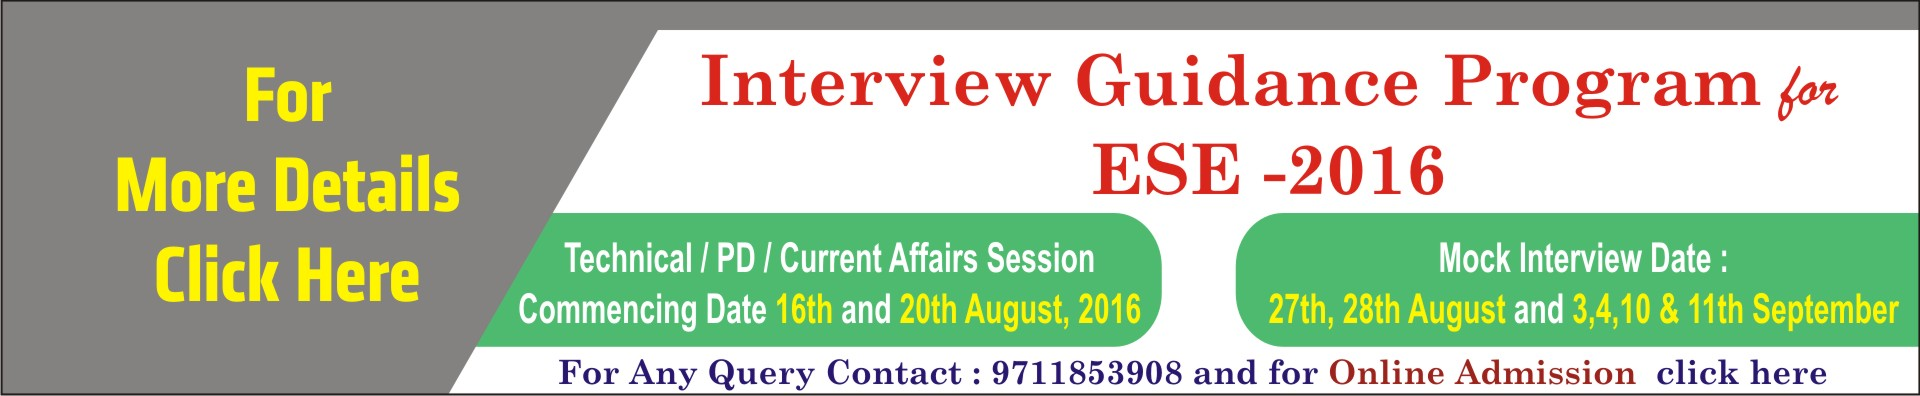 IES Master Interview Guidance Program from 16th Aug